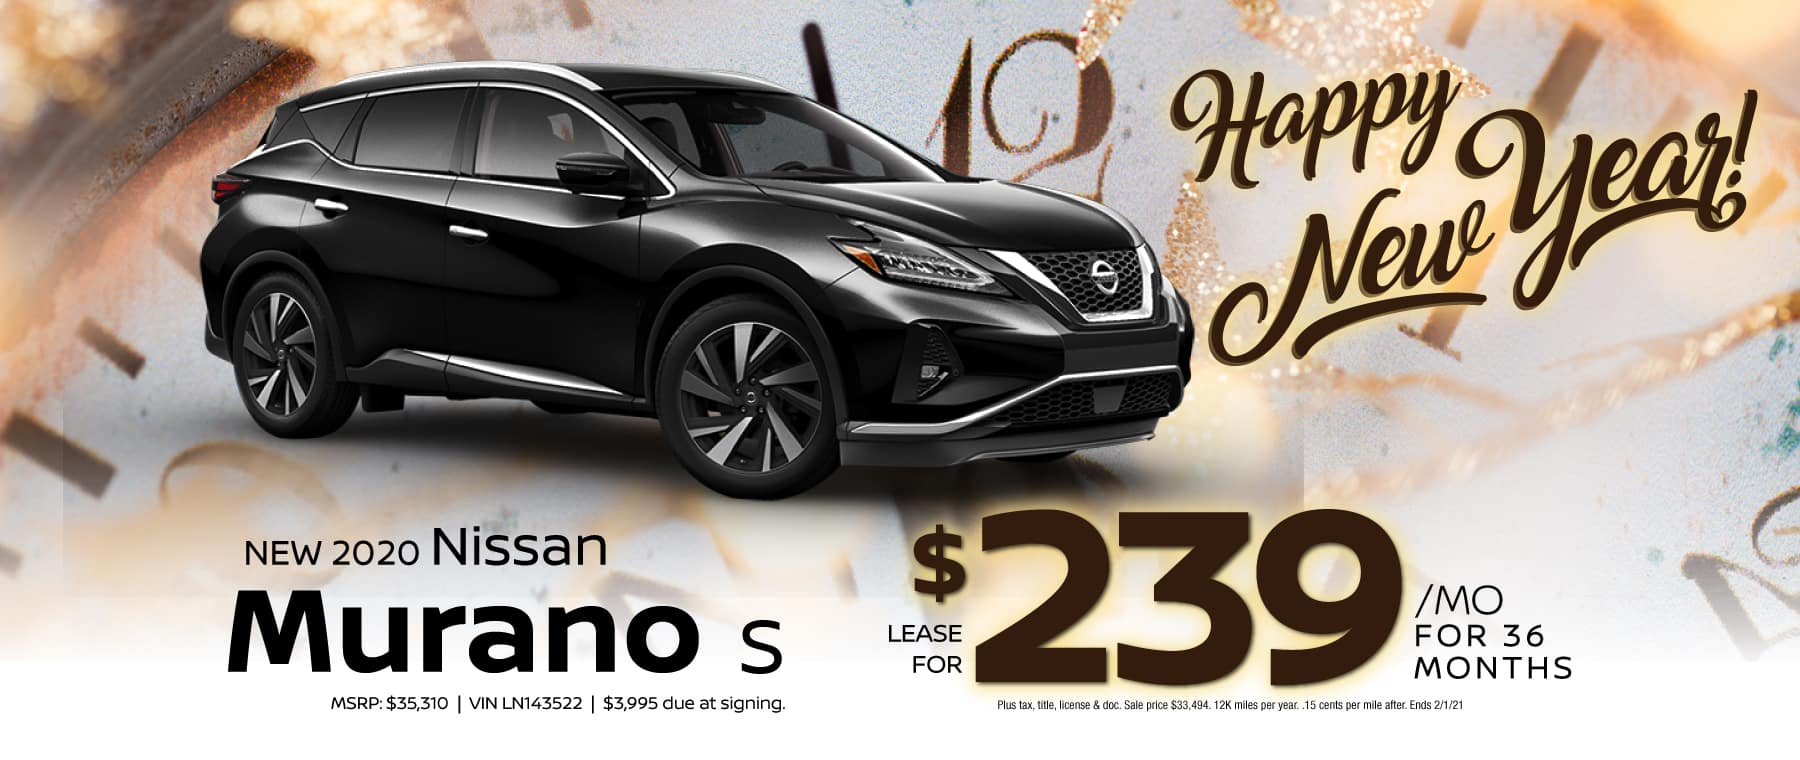 HNSC122920-lease-1800x760_Murano